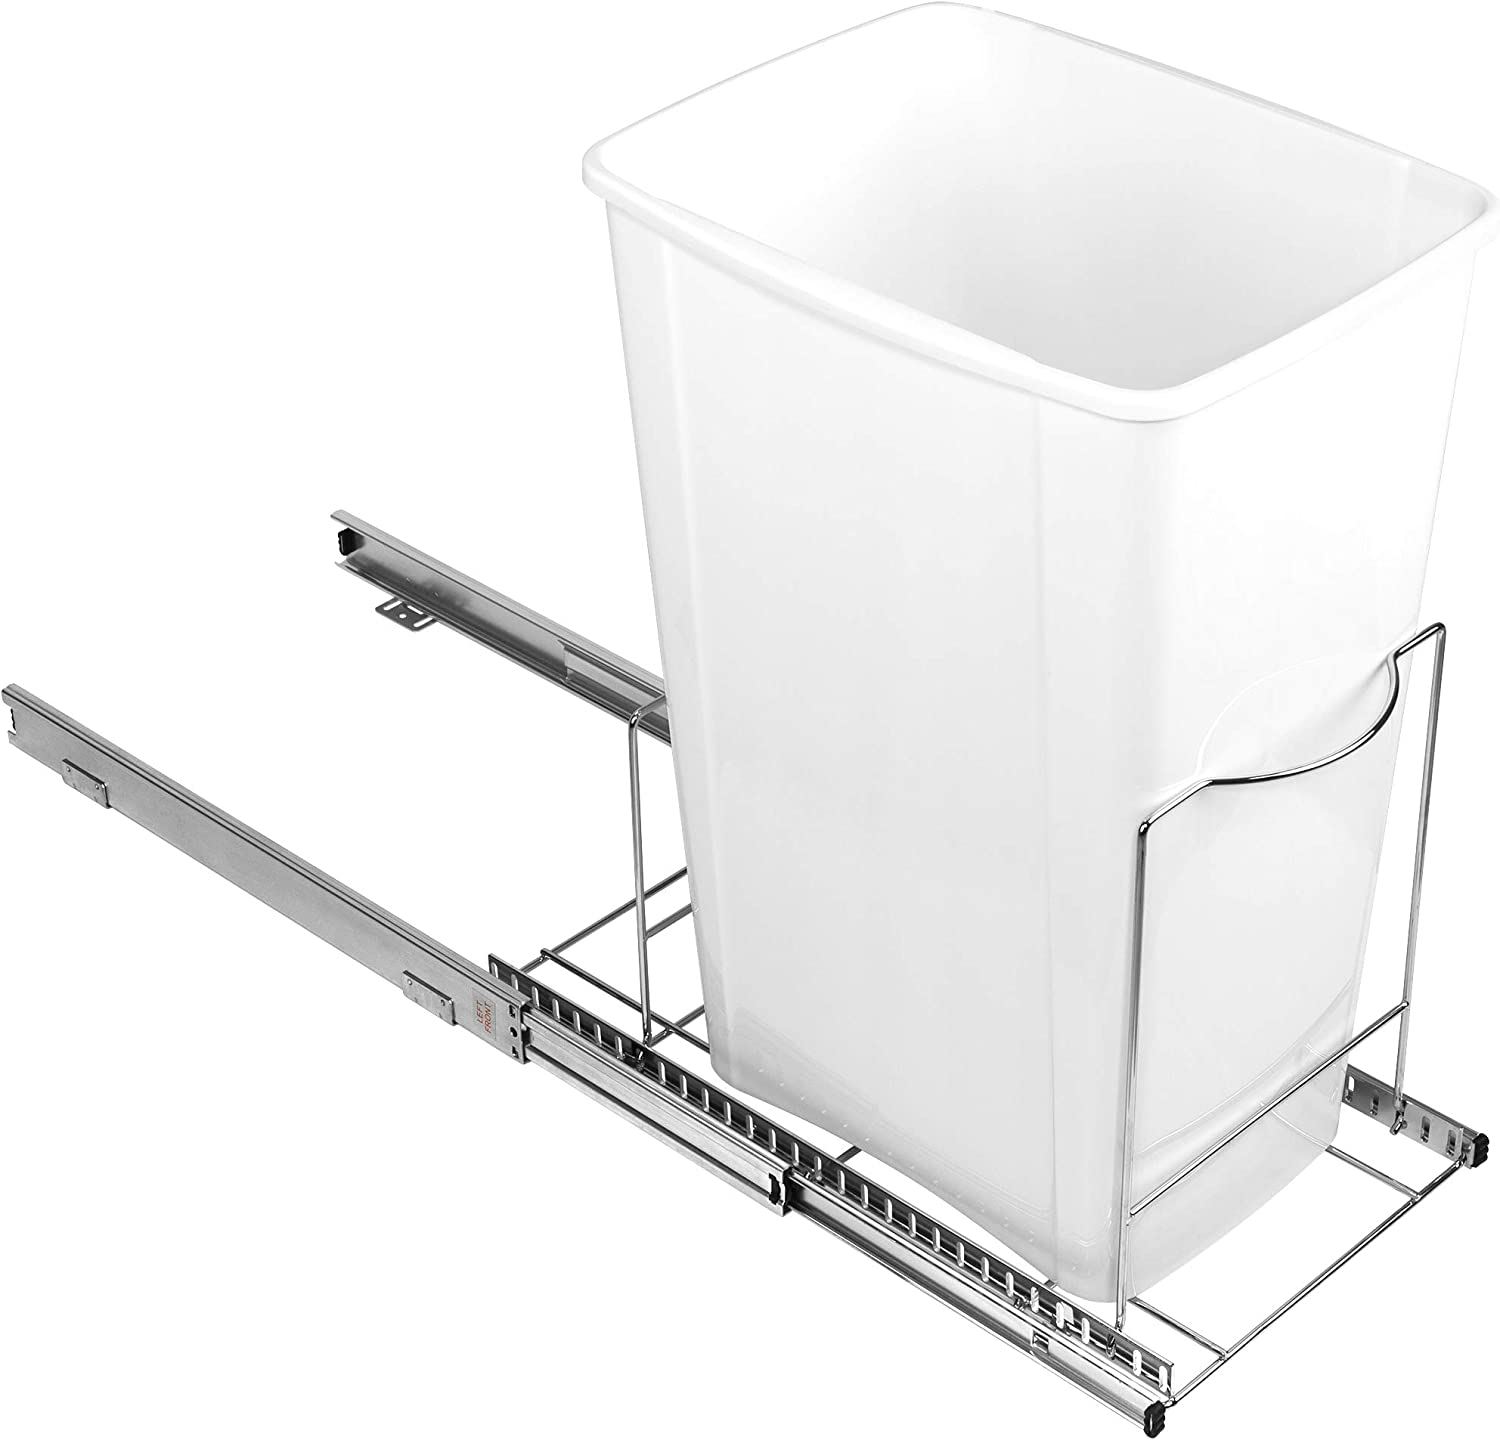 """Richards Homewares Pull Out Trash Adjustable Roll Out Sliding Garbage Bin Shelf for Kitchen Cabinets 10.6""""H x 22""""W x 19.25""""D – Accommodates One or Two Waste Cans (not included) 9-7/8""""W – 17""""L, Black"""